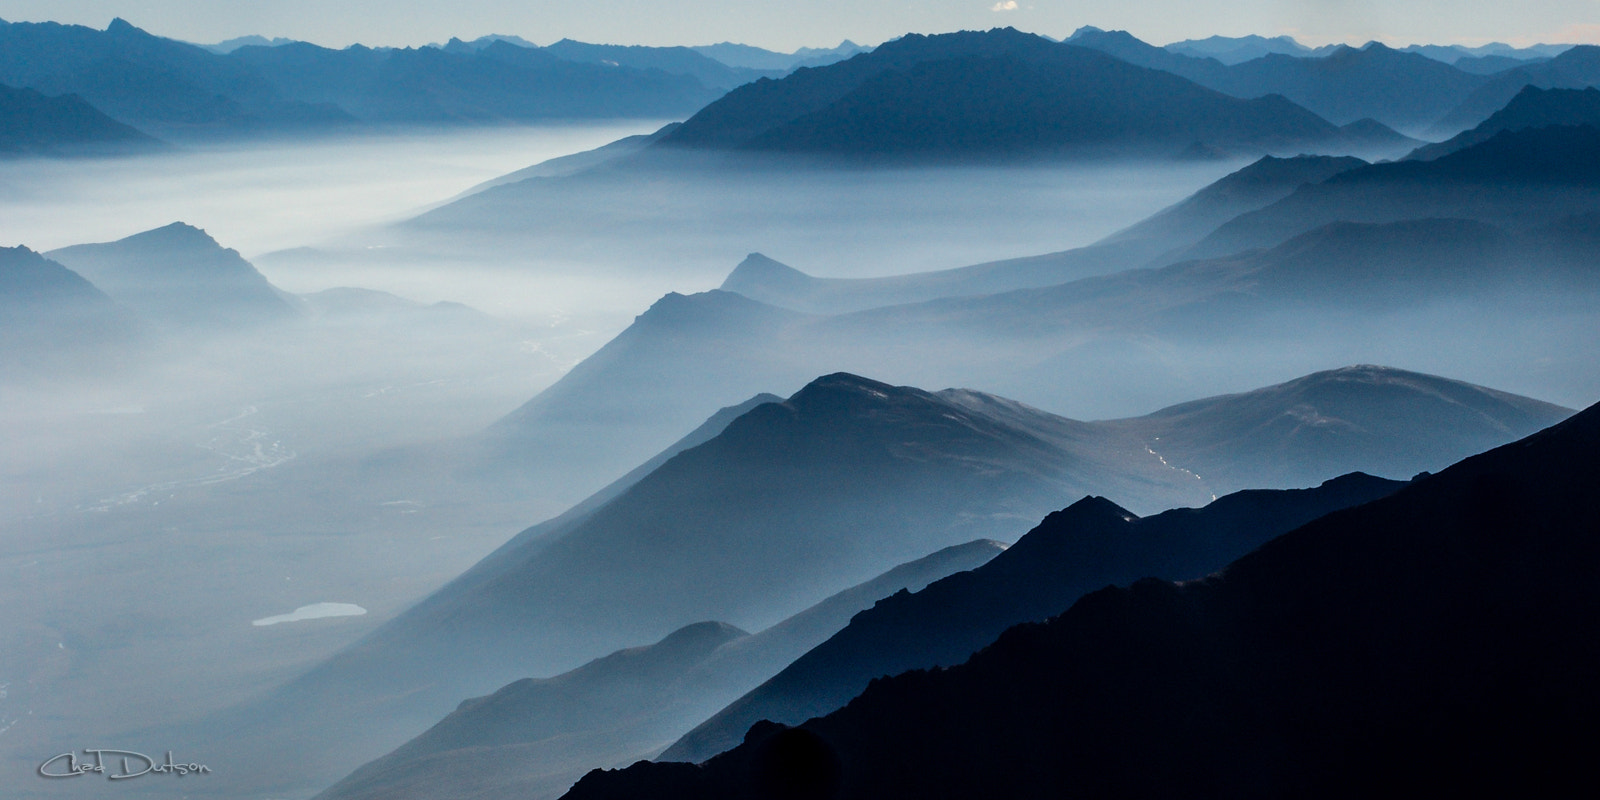 Photograph Morning Mist by Chad Dutson on 500px